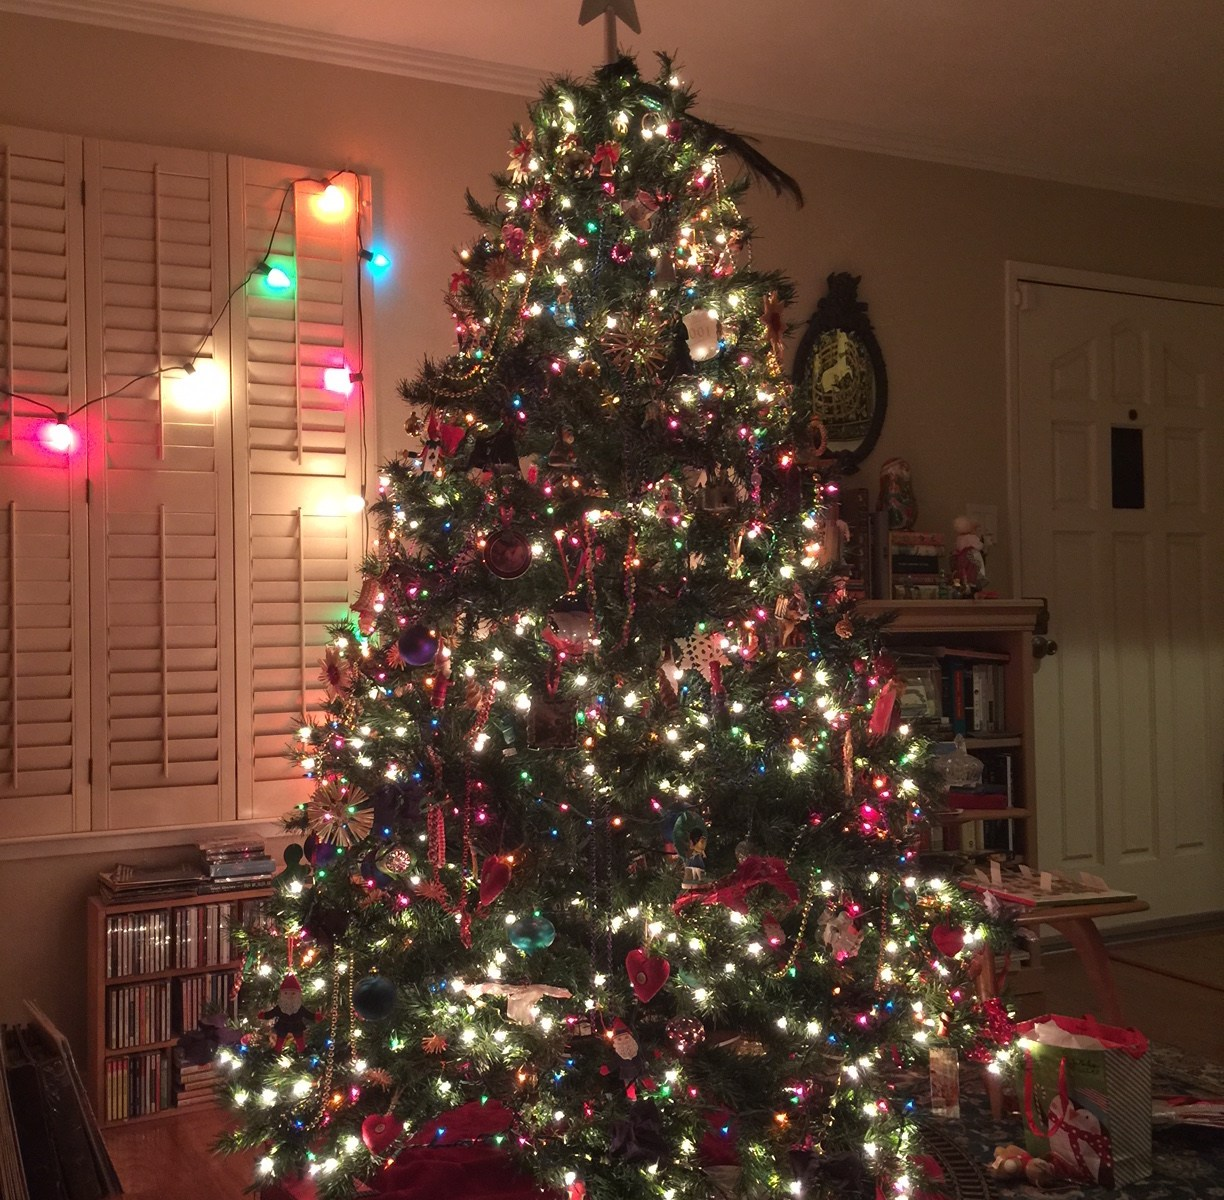 My big Christmas tree